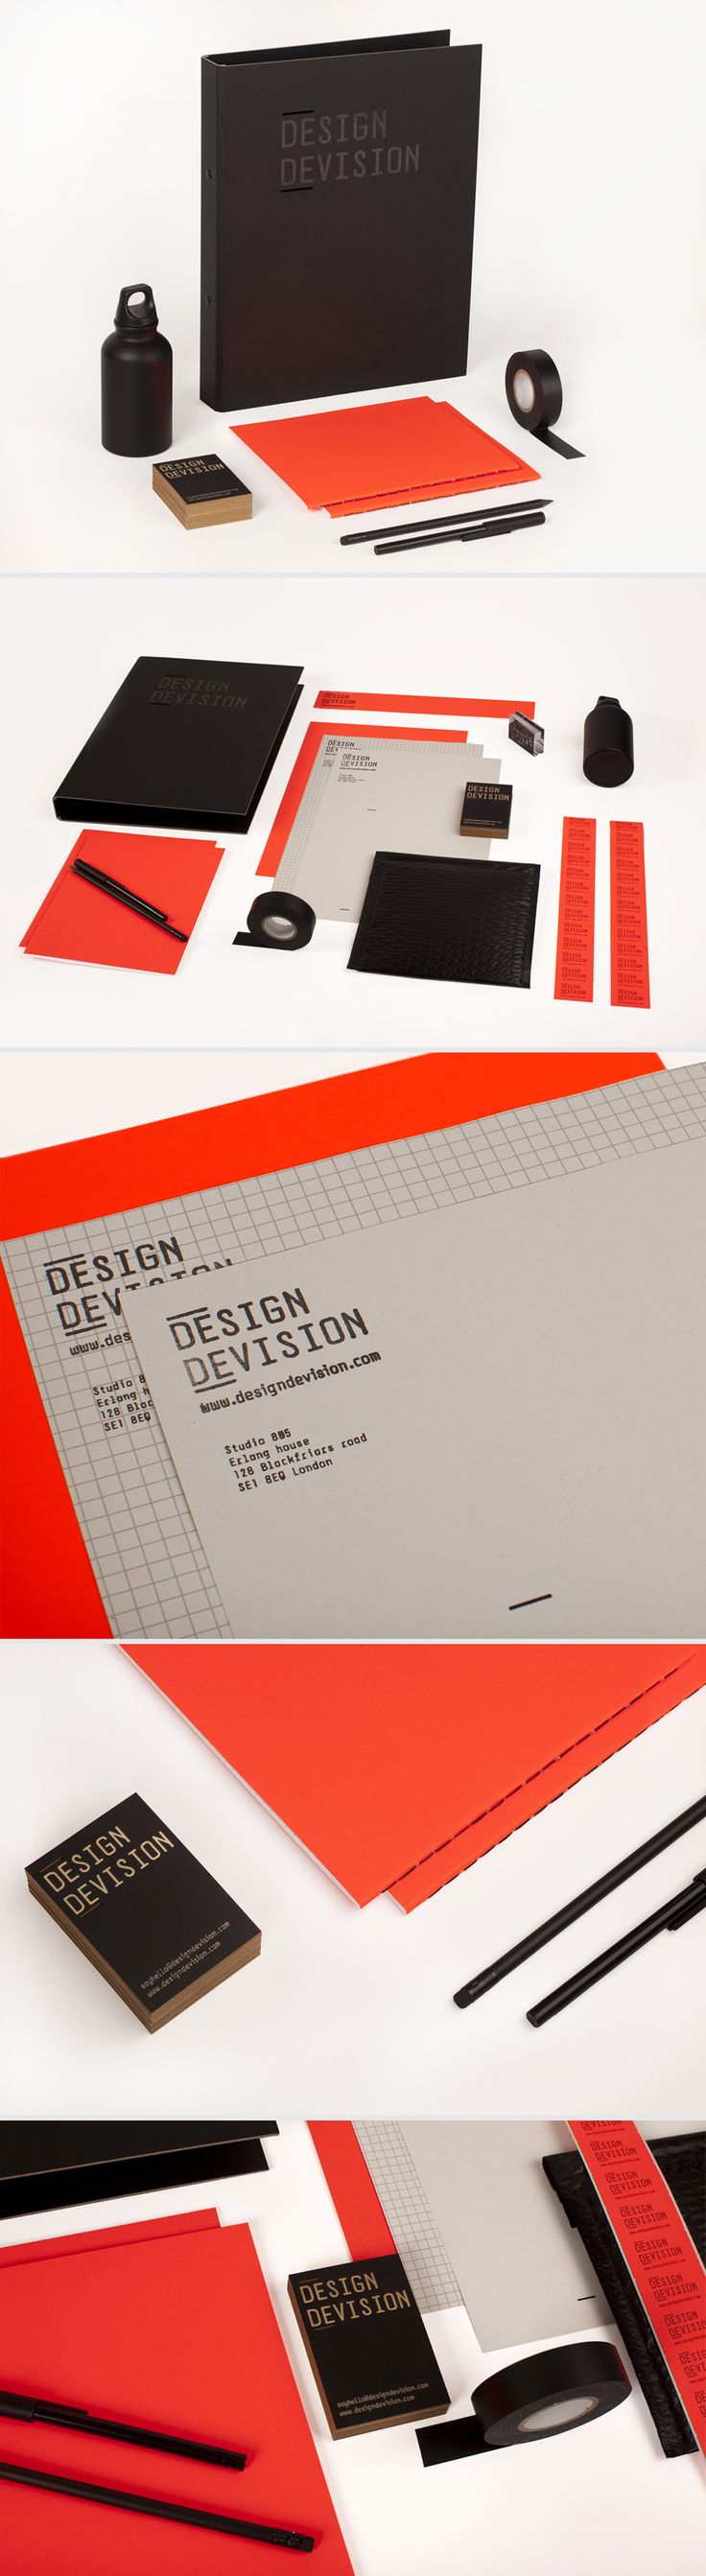 Design Devision branding identity, stationery, and collateral designs